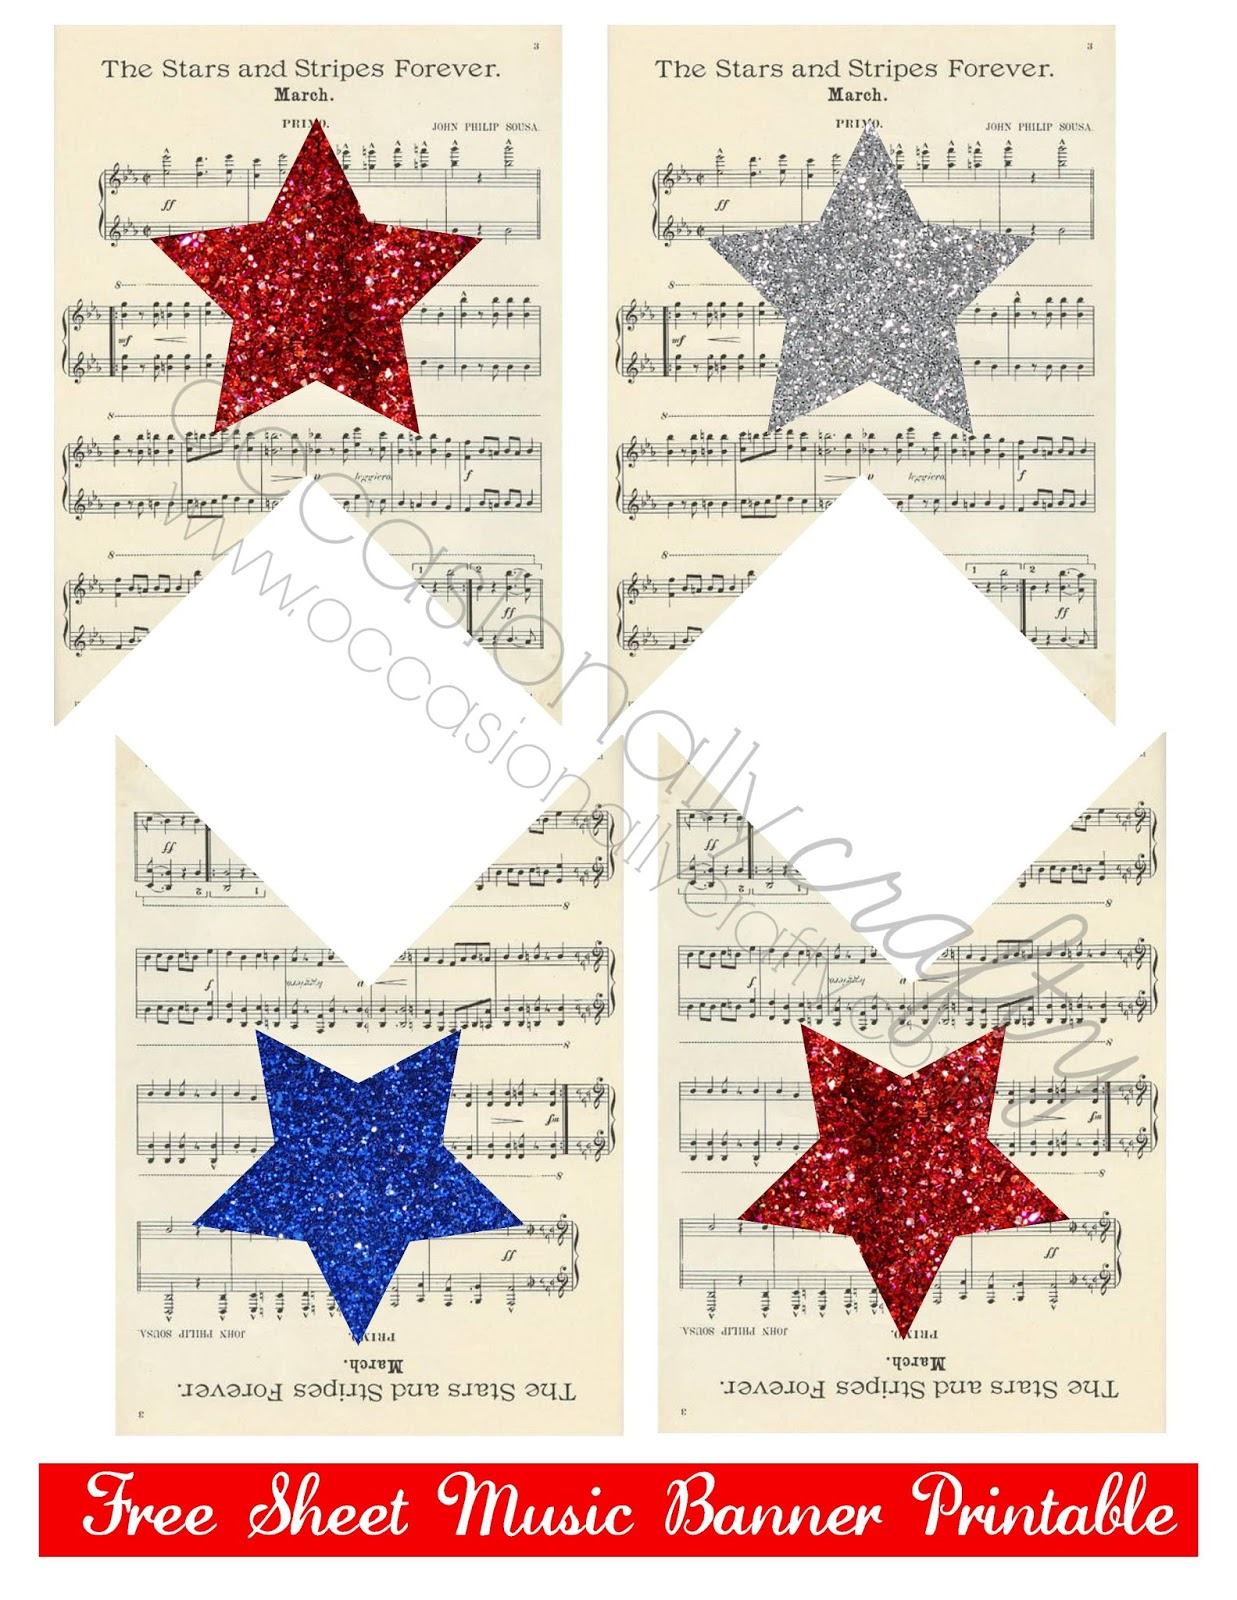 4th of july printable sheet music banner yellow bliss road